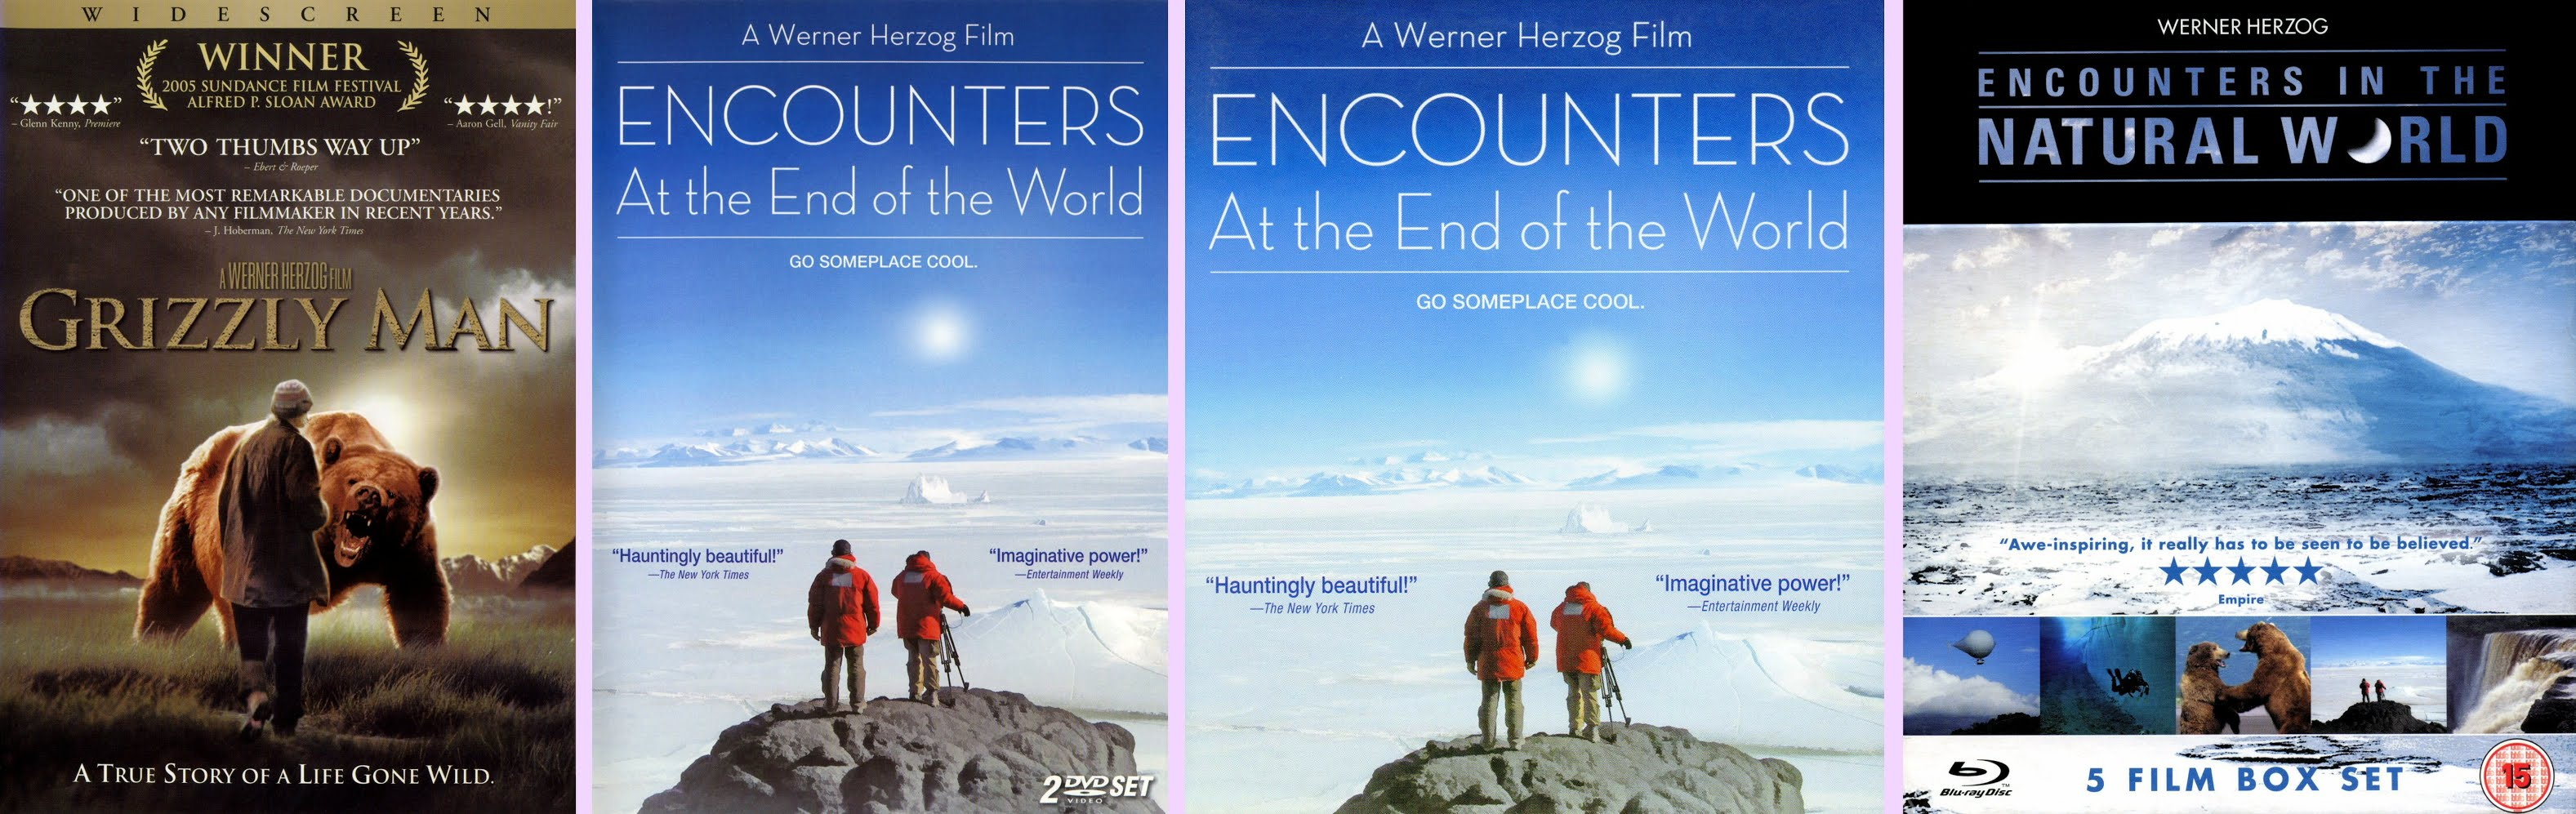 DVD Exotica: Werner Herzog's Encounters In the Natural World